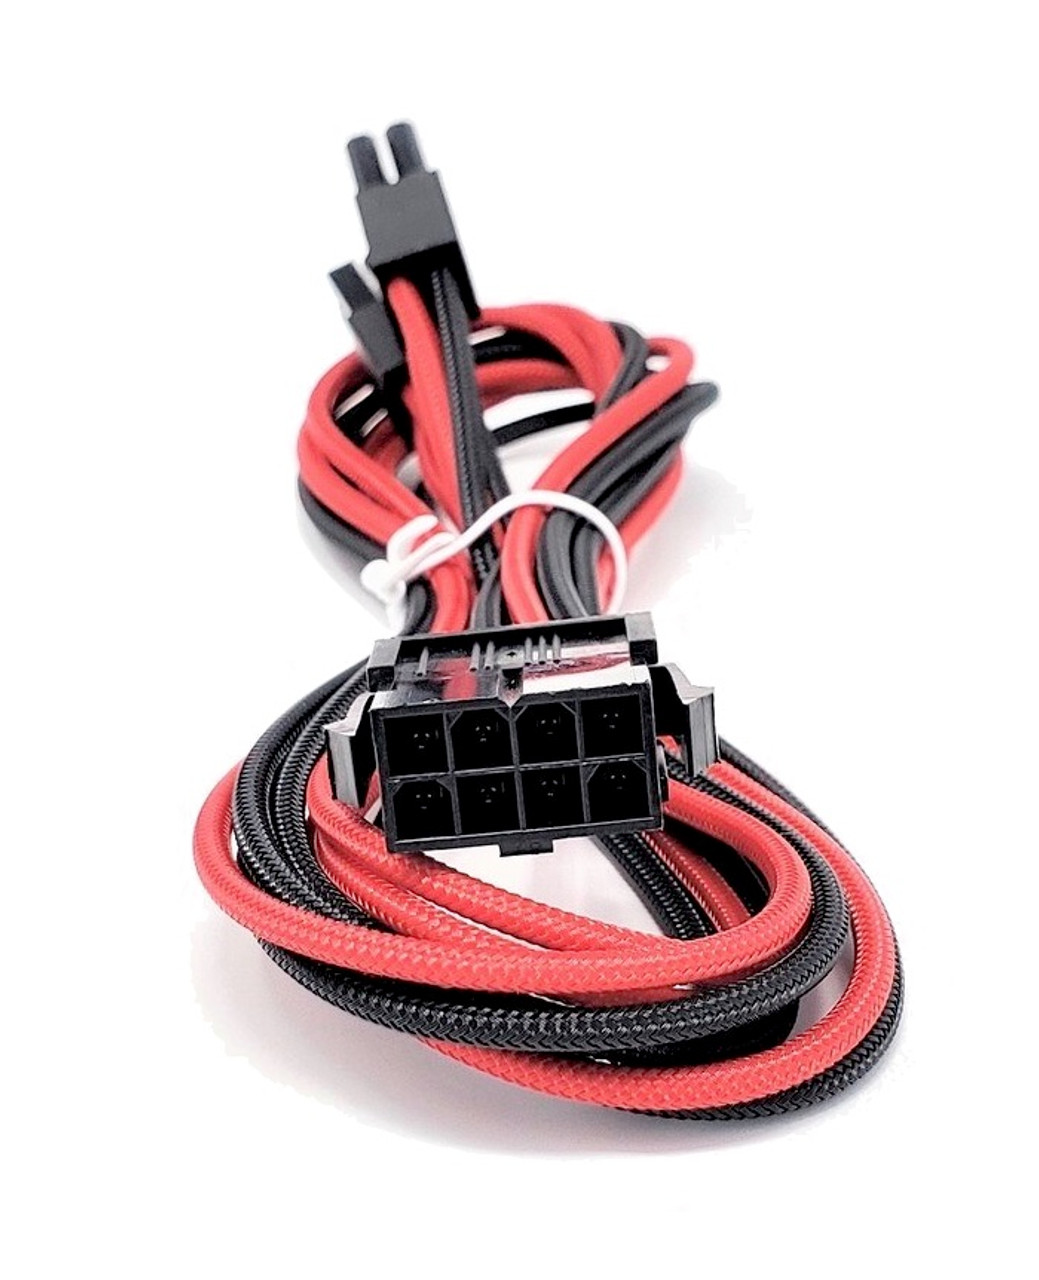 Premium Sleeved PSU Cable Extension Kit (Red/Black)